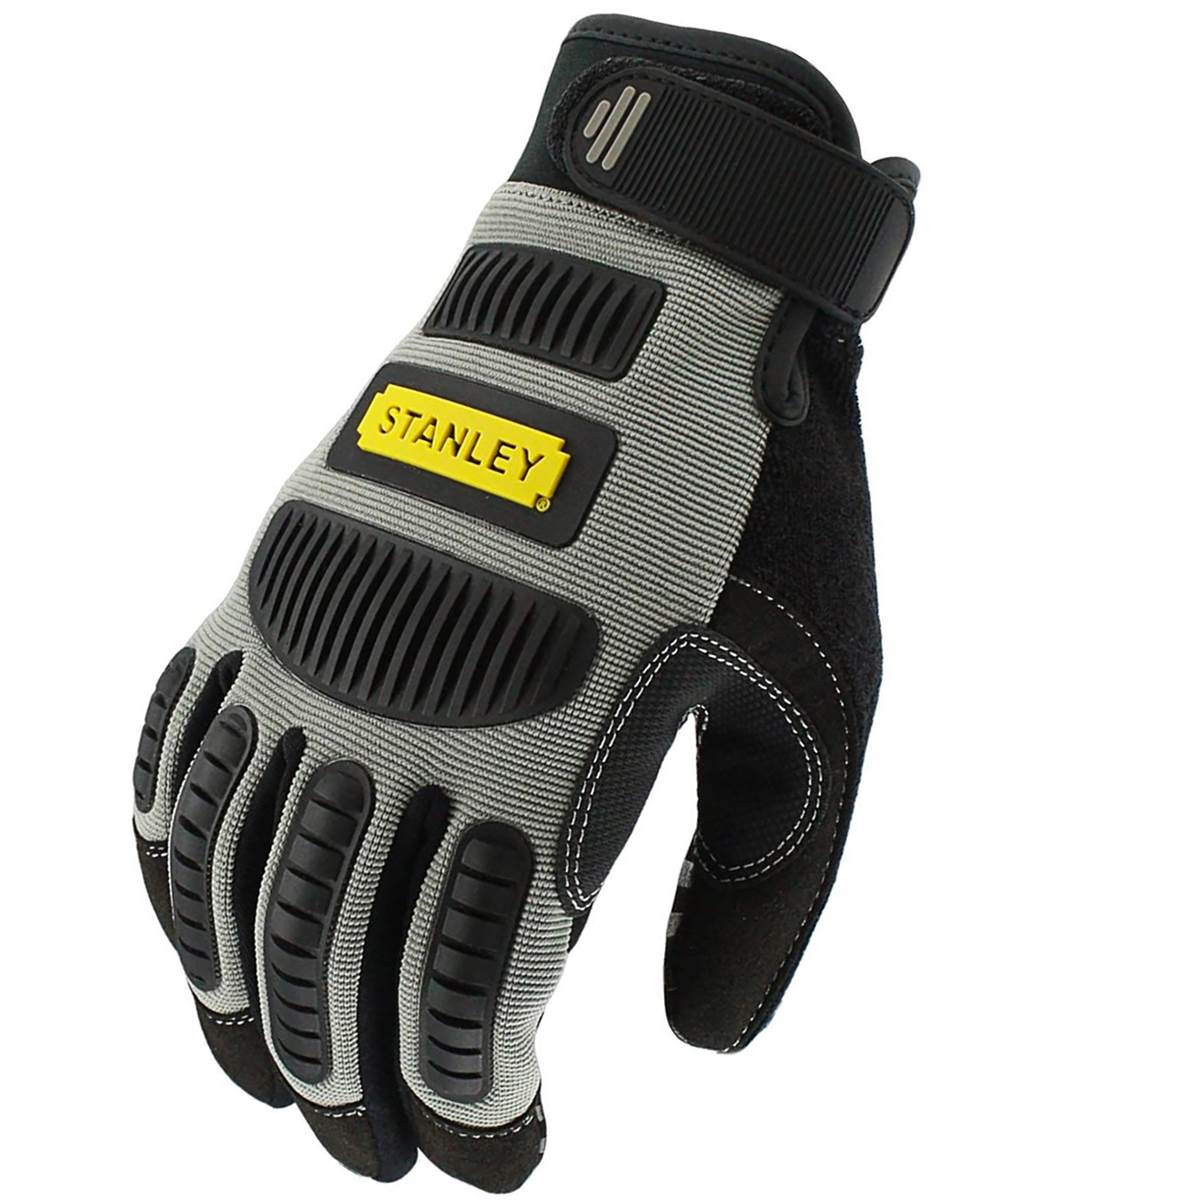 GANTS EXTREMES PERFORMANCE T10 STANLEY